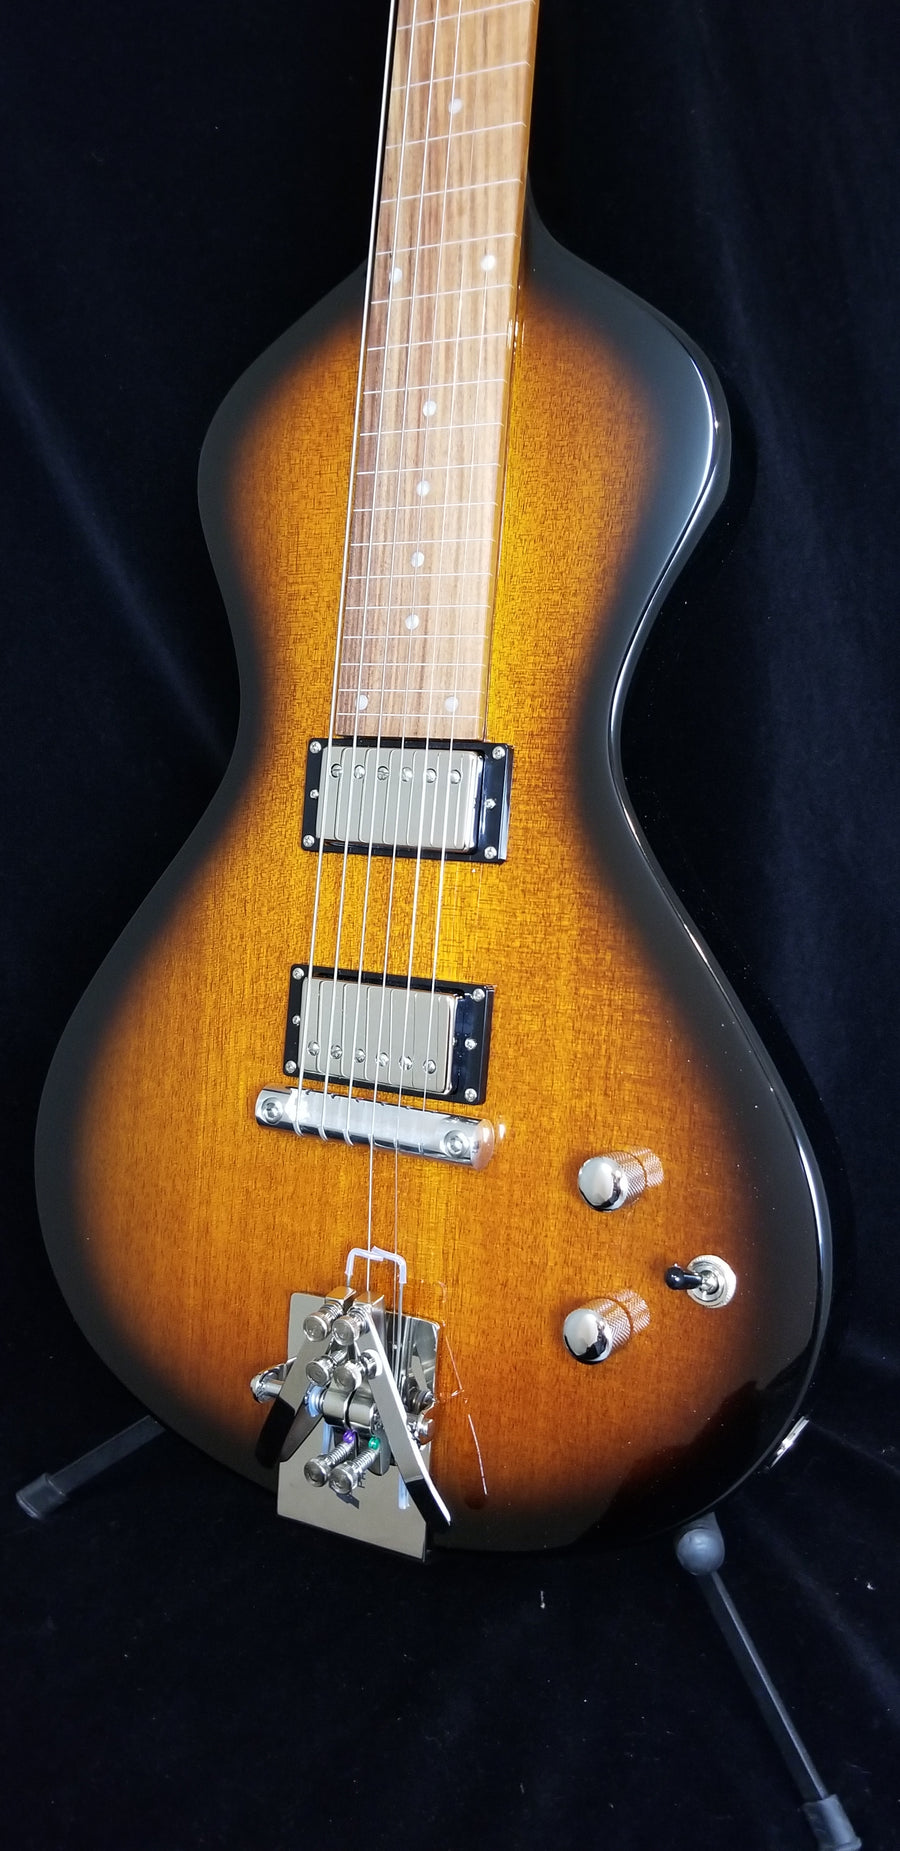 Upgraded NEW Asher Electro Hawaiian® Junior Lap Steel Tobacco Burst - Lollar Imperial Humbuckers, USA Electronics and Hipshot Palm Lever!